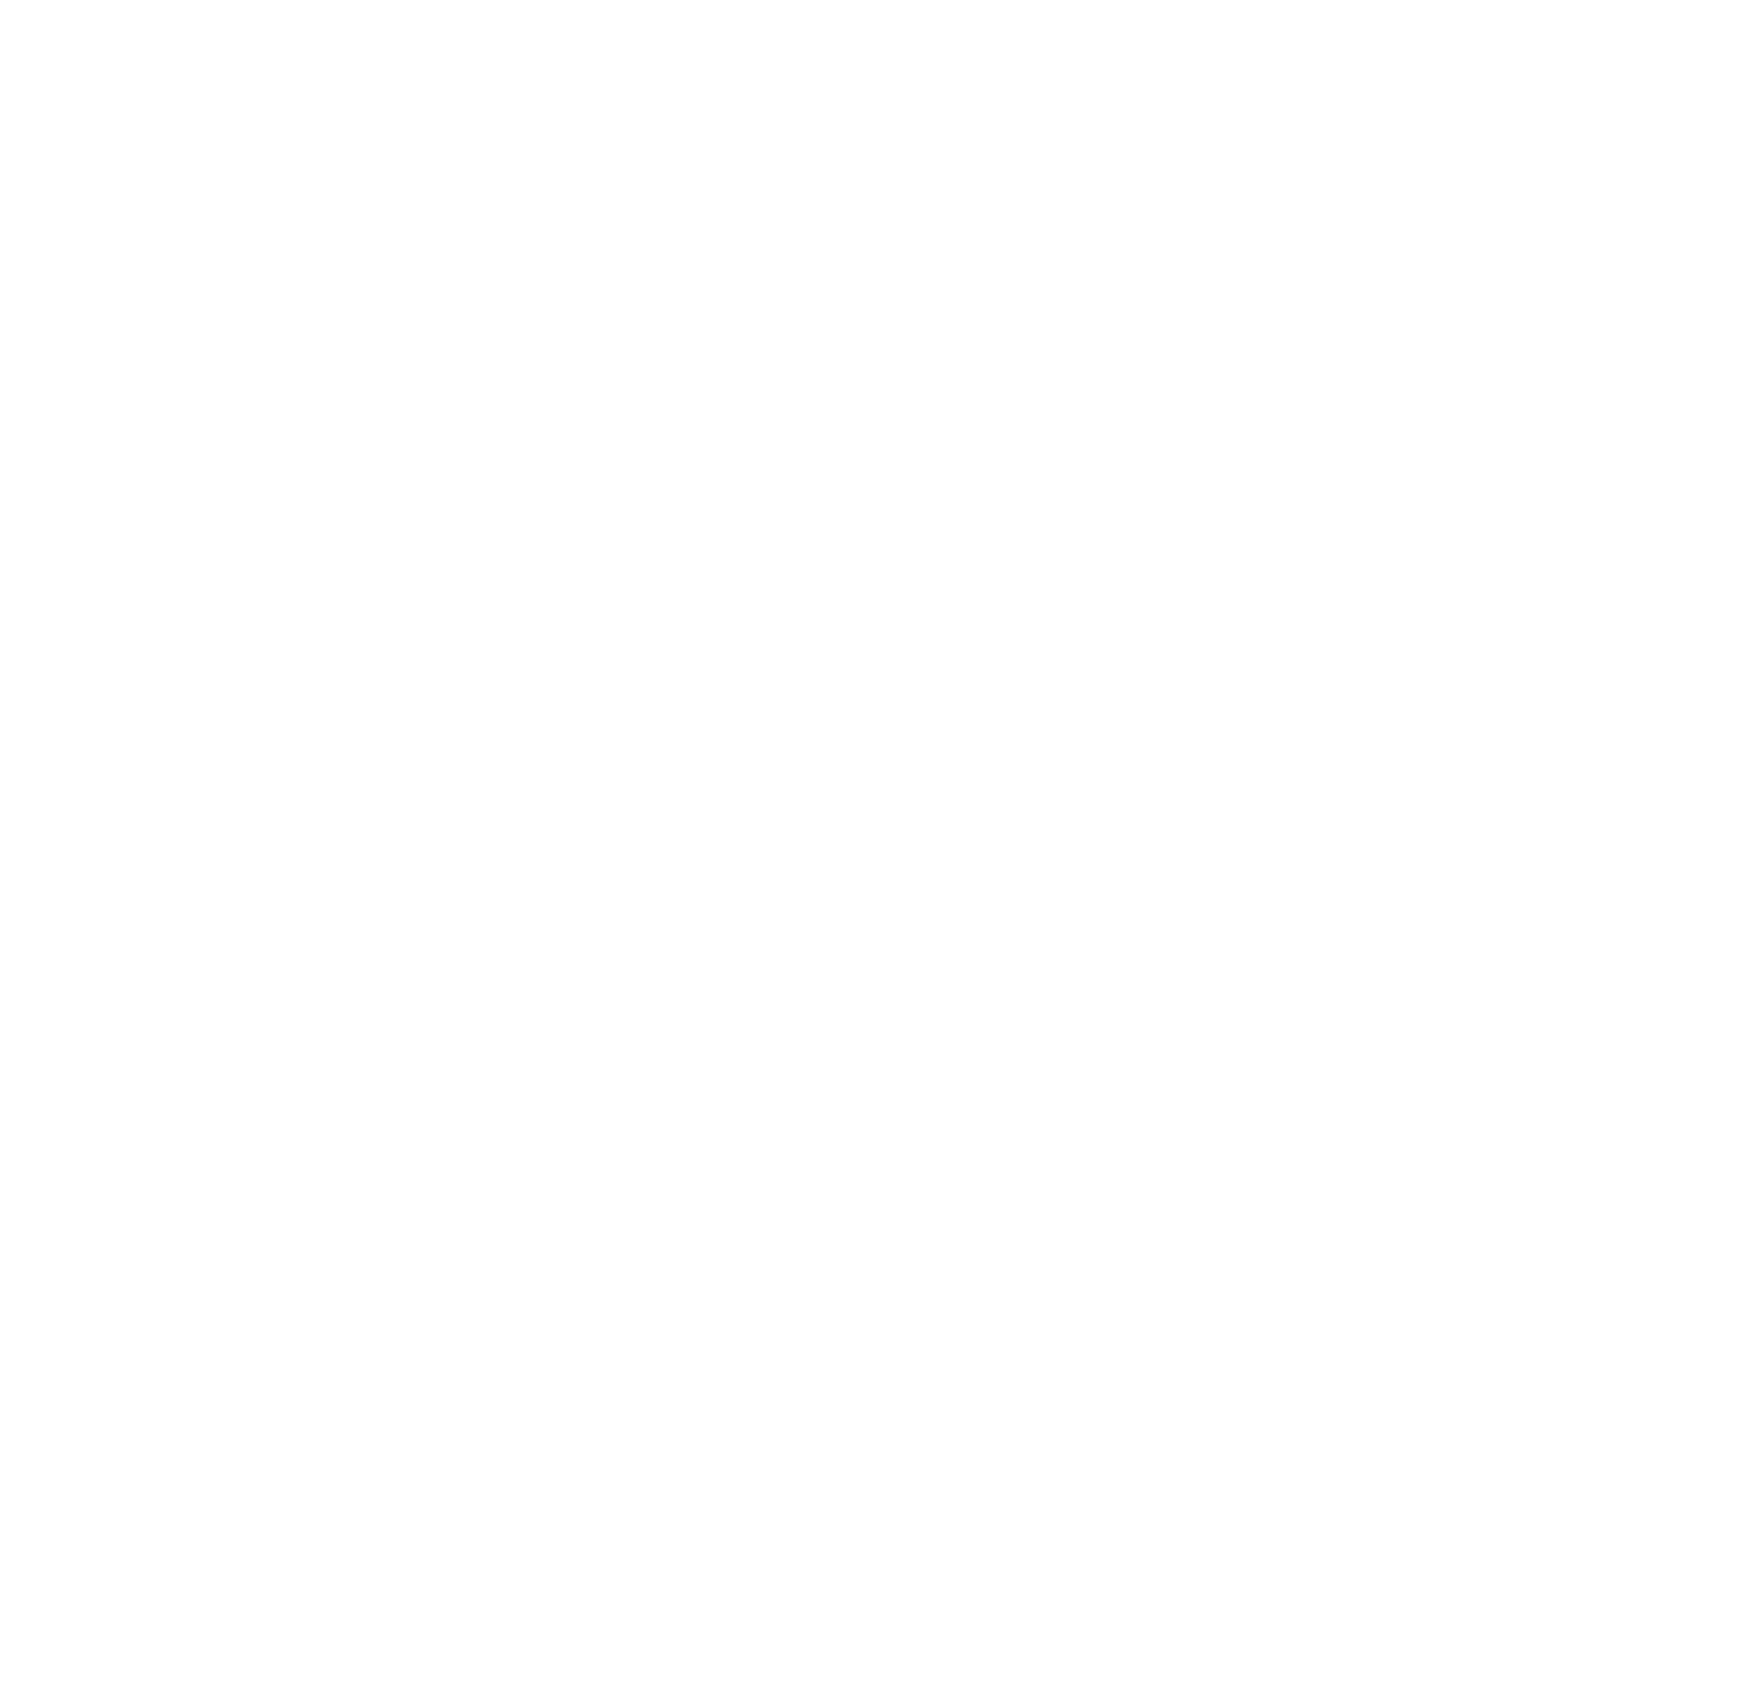 White letter x png. Multiply dash the dashboard